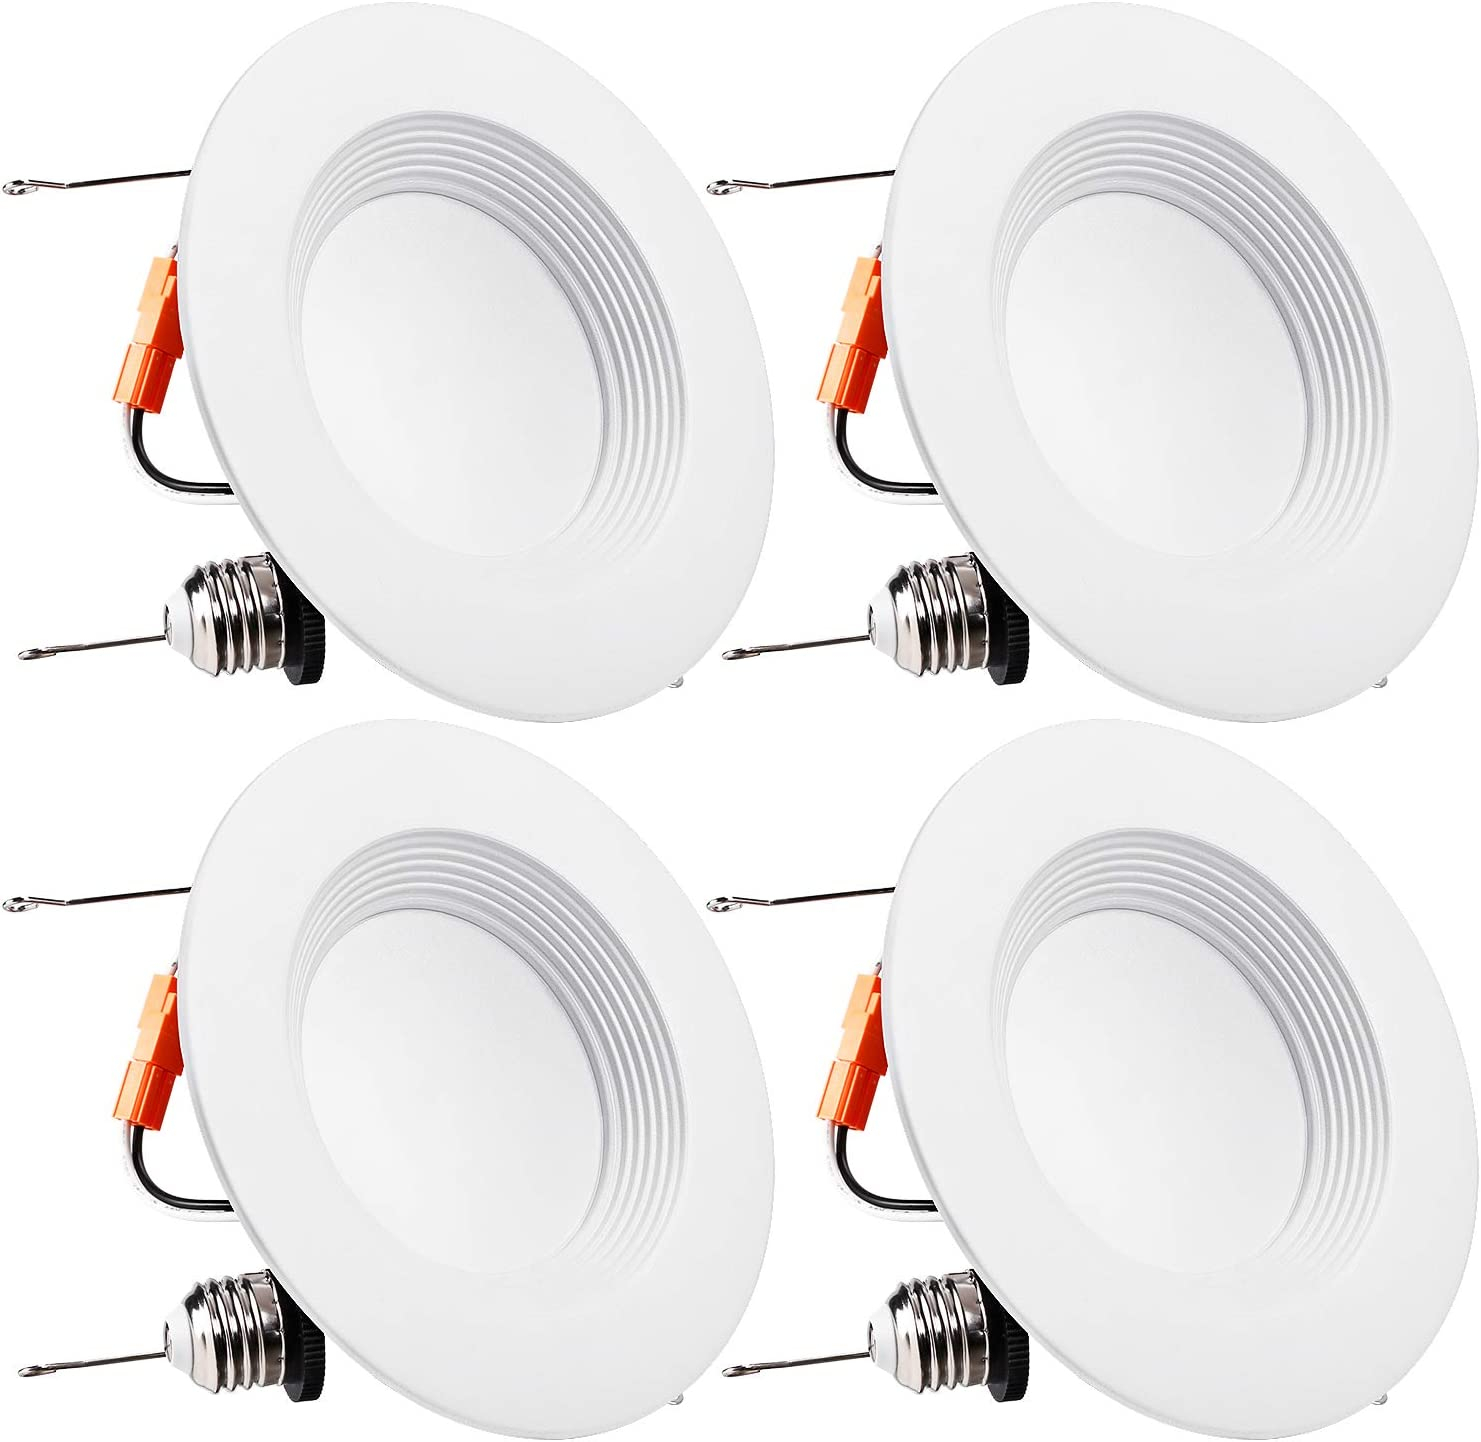 Body Color : Silver, Emitting Color : White Tlwangl Downlight 10pcs//Lots LED Downlight Round Recessed Lamp 5W 7W 9W 12W 15W 20W 30W LED Dimmable Ceiling Lamp Spot Light for Home Illumination